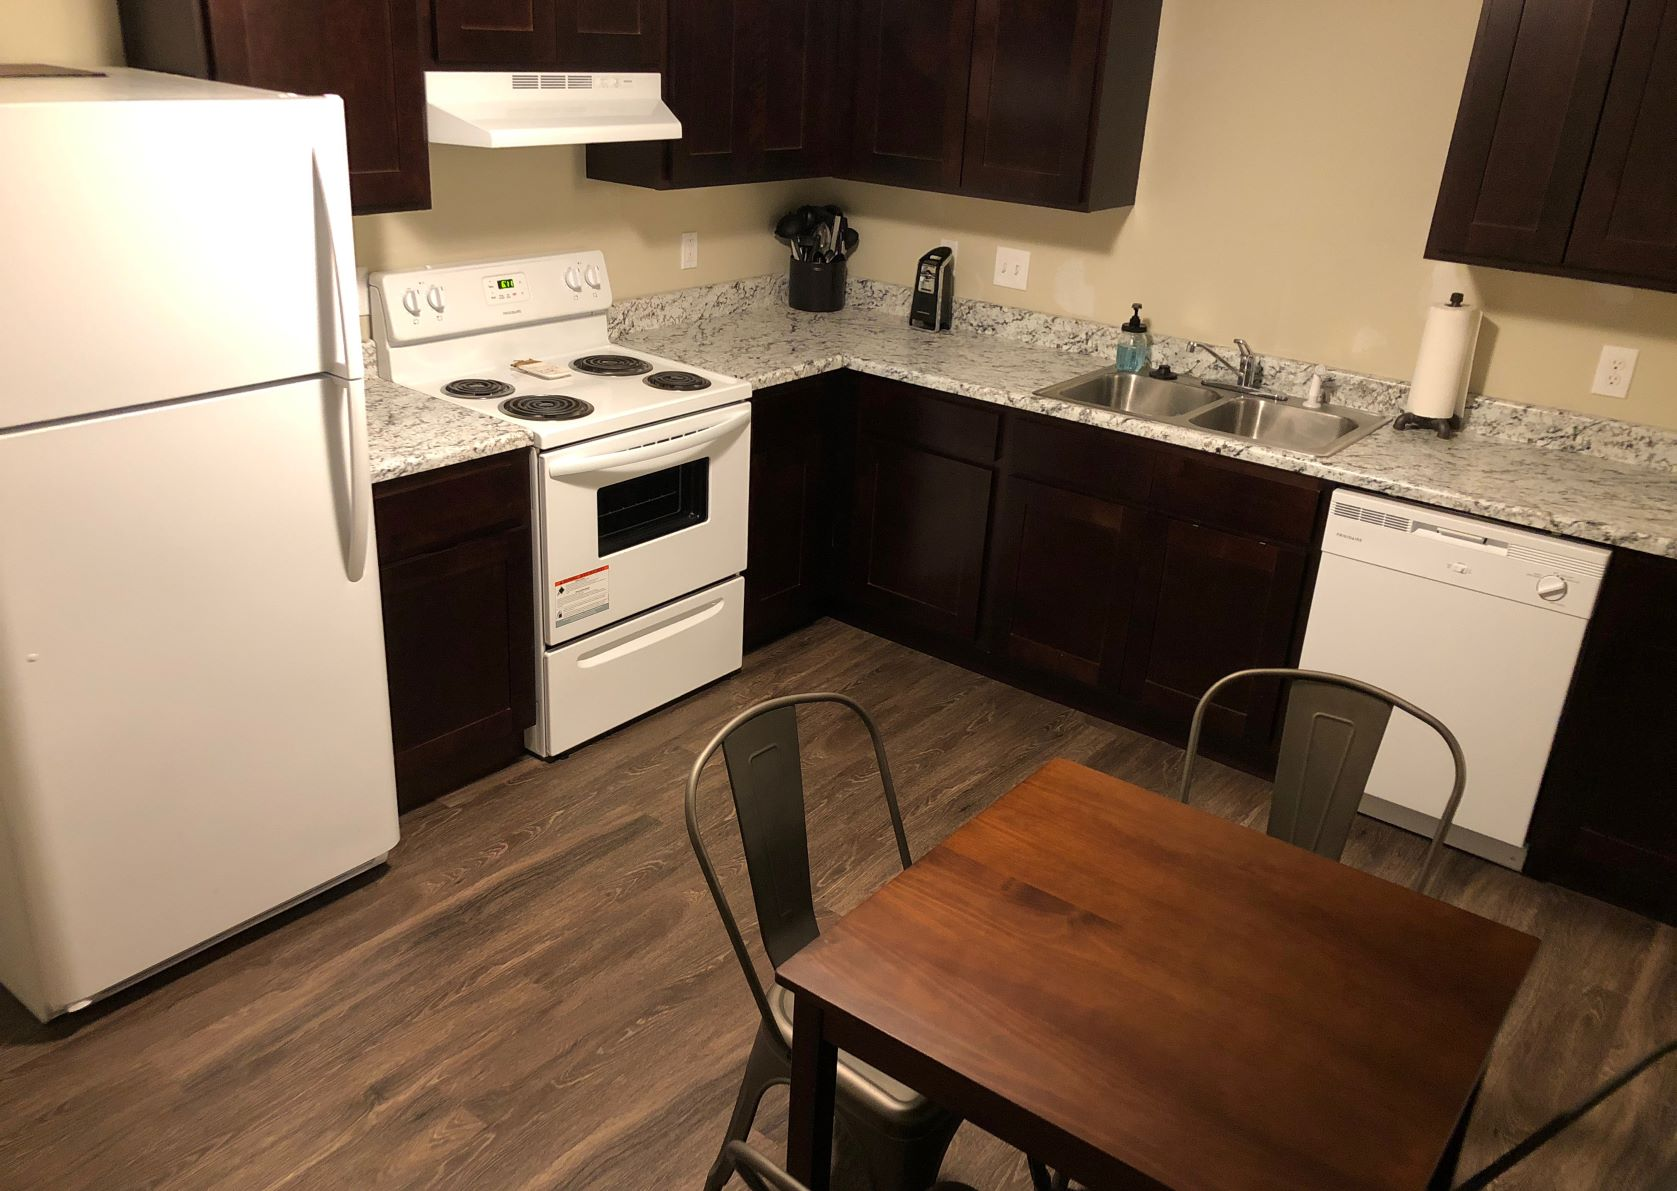 Applecrest Village Apartments Kitchen